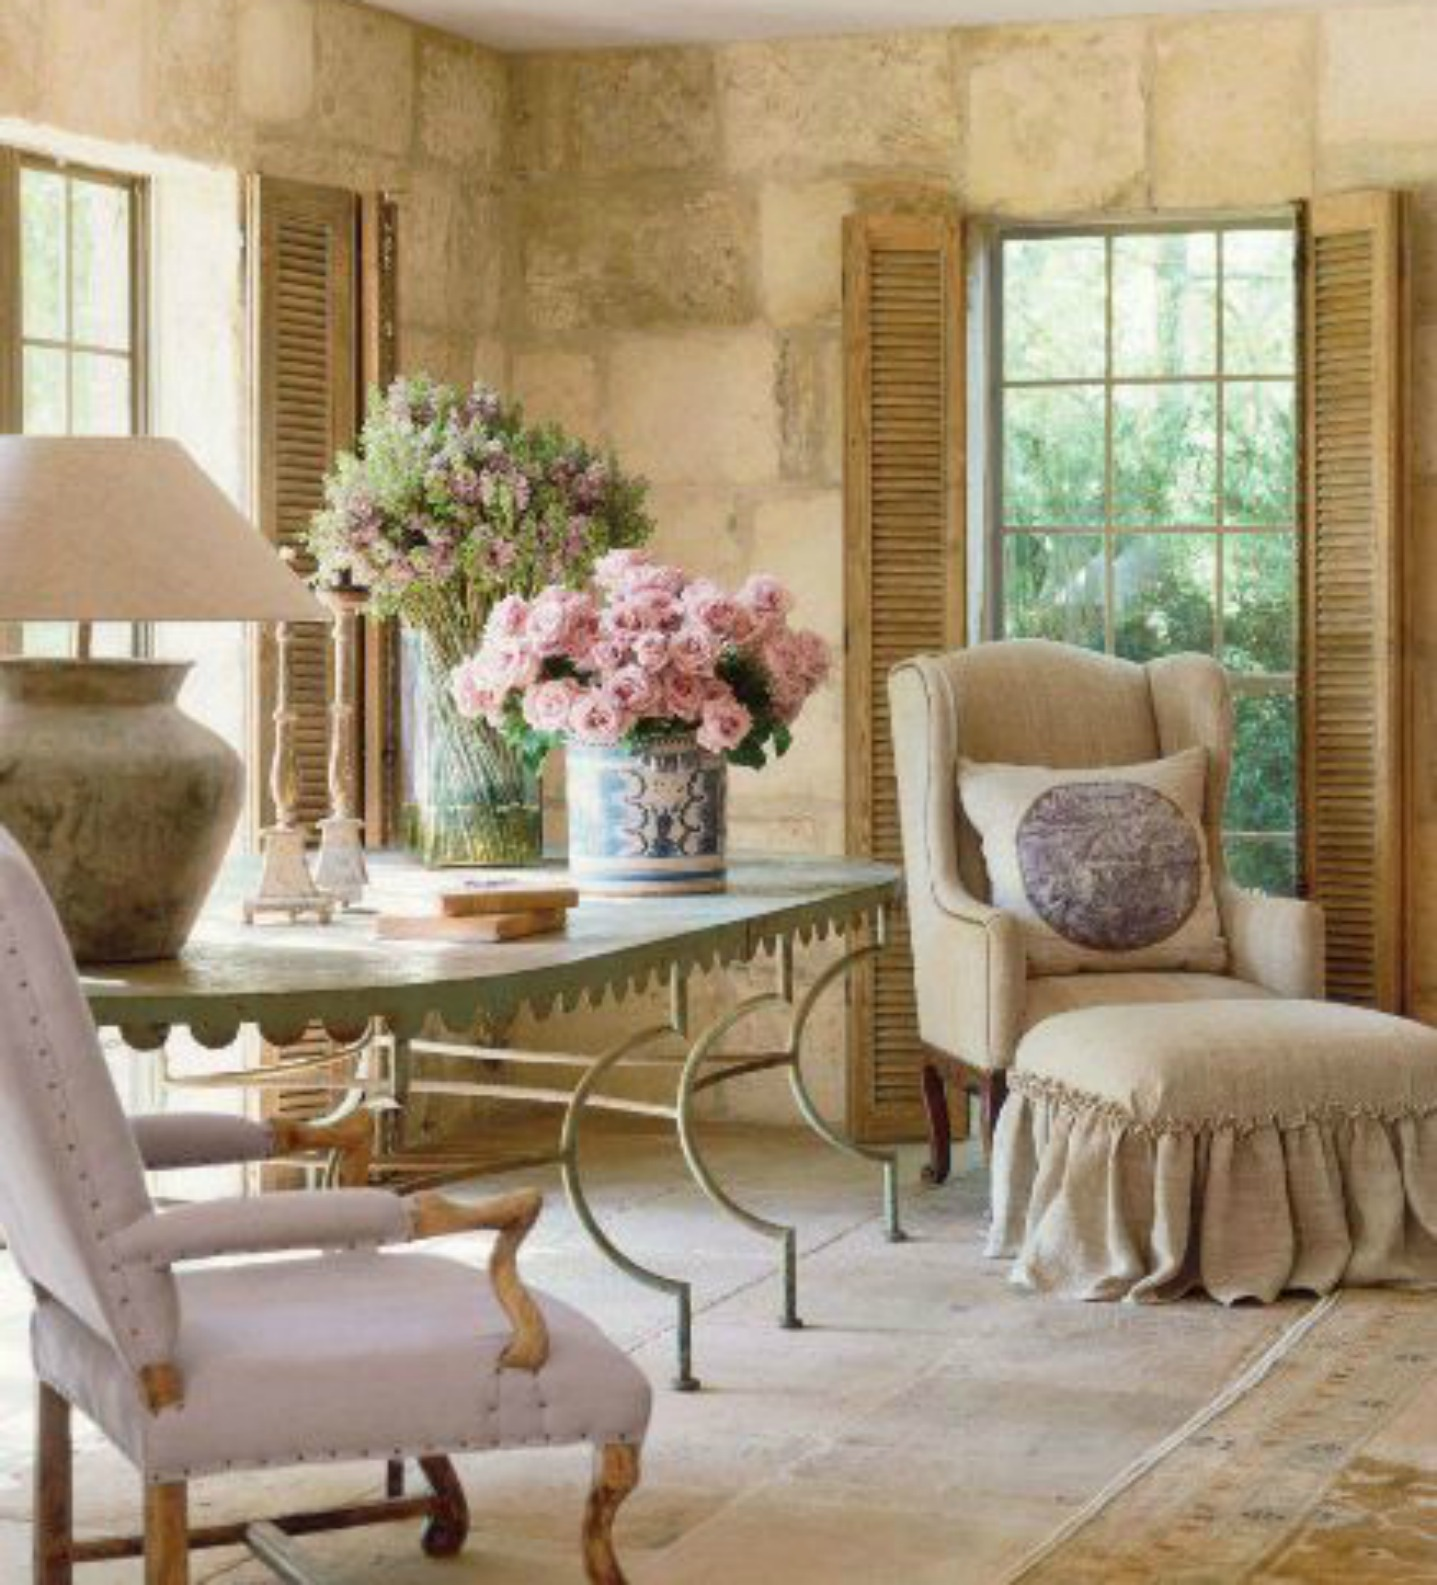 Country Farmhouse Living Room: 66 French Farmhouse Decor Inspiration Ideas {Part 1